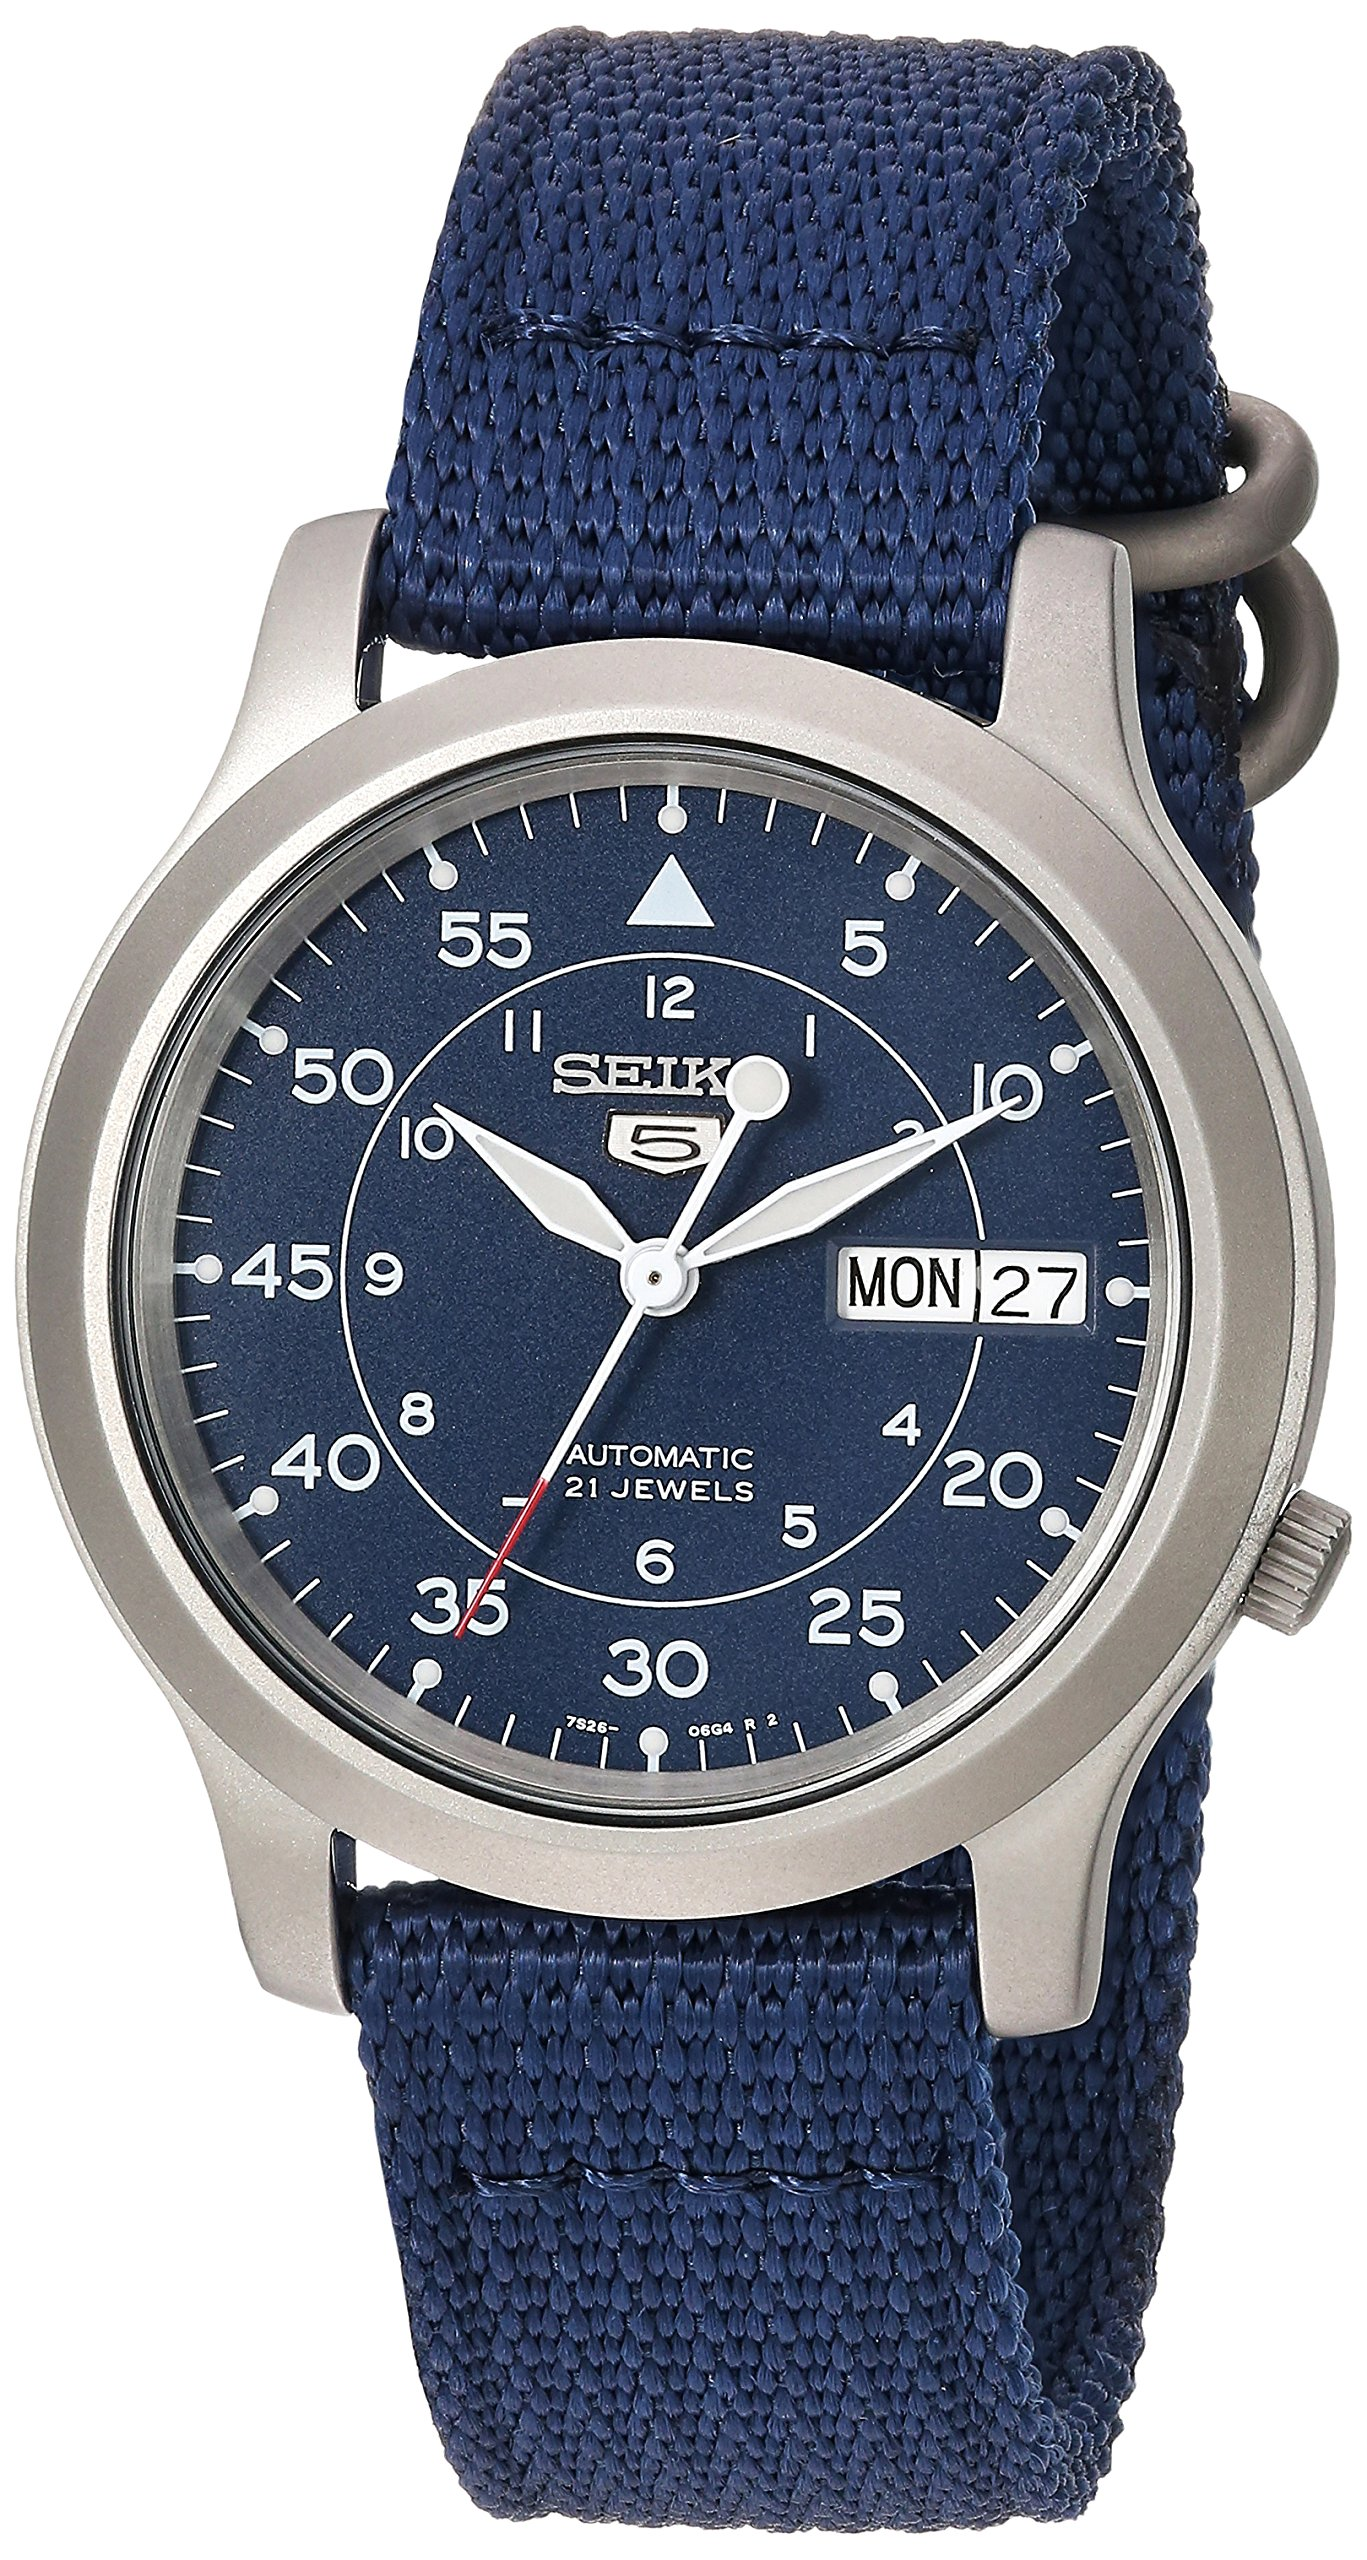 Seiko Men's SNK807 Seiko 5 Automatic Stainless Steel Watch with Blue Canvas Band by SEIKO